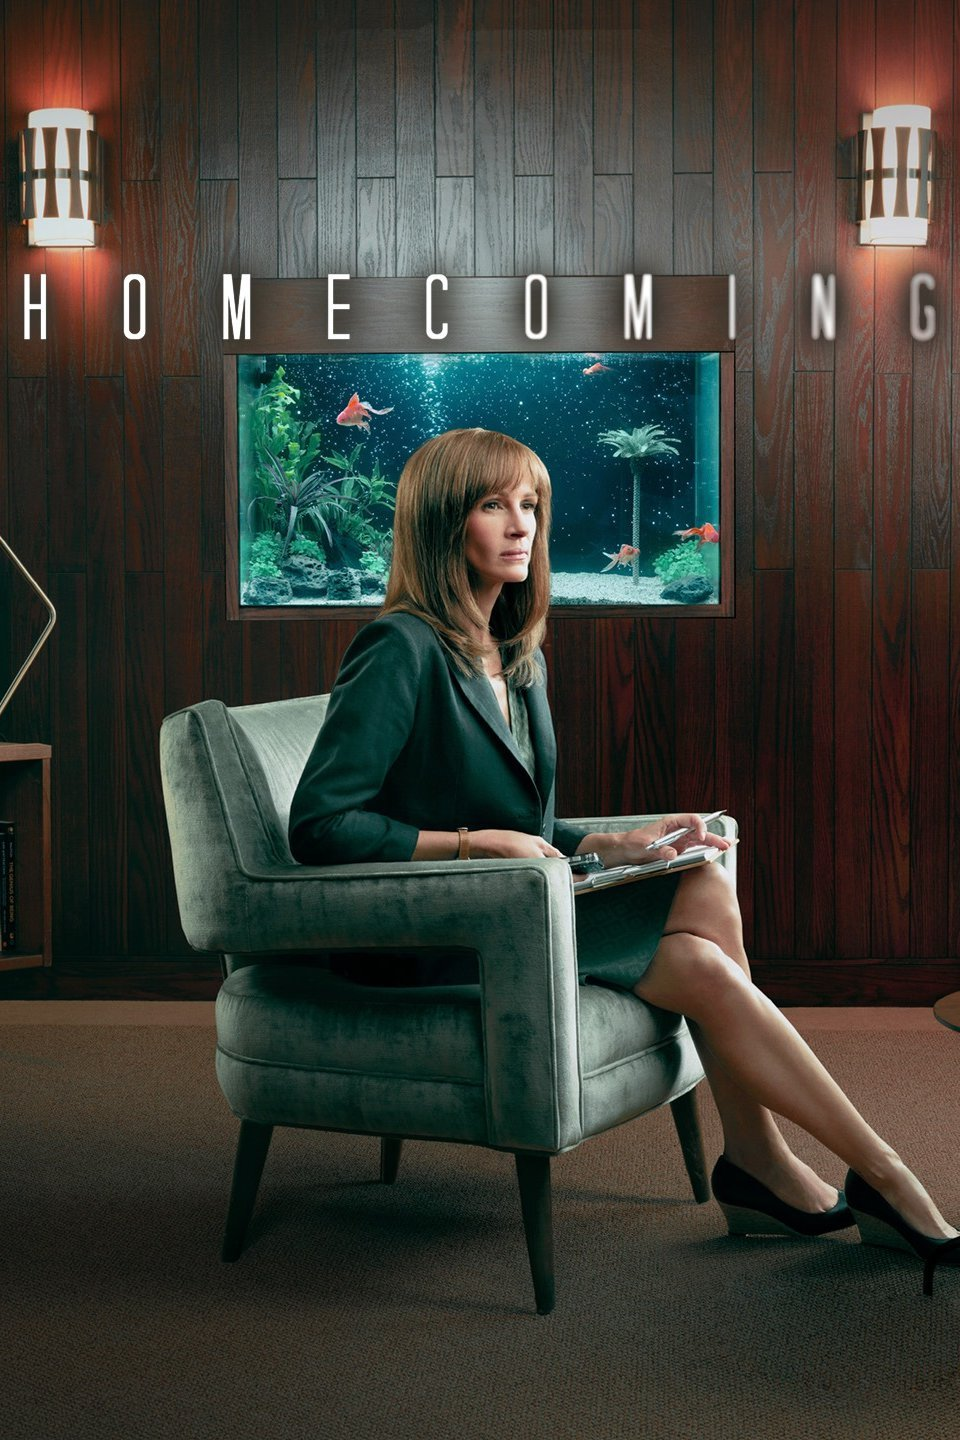 Image result for homecoming amazon